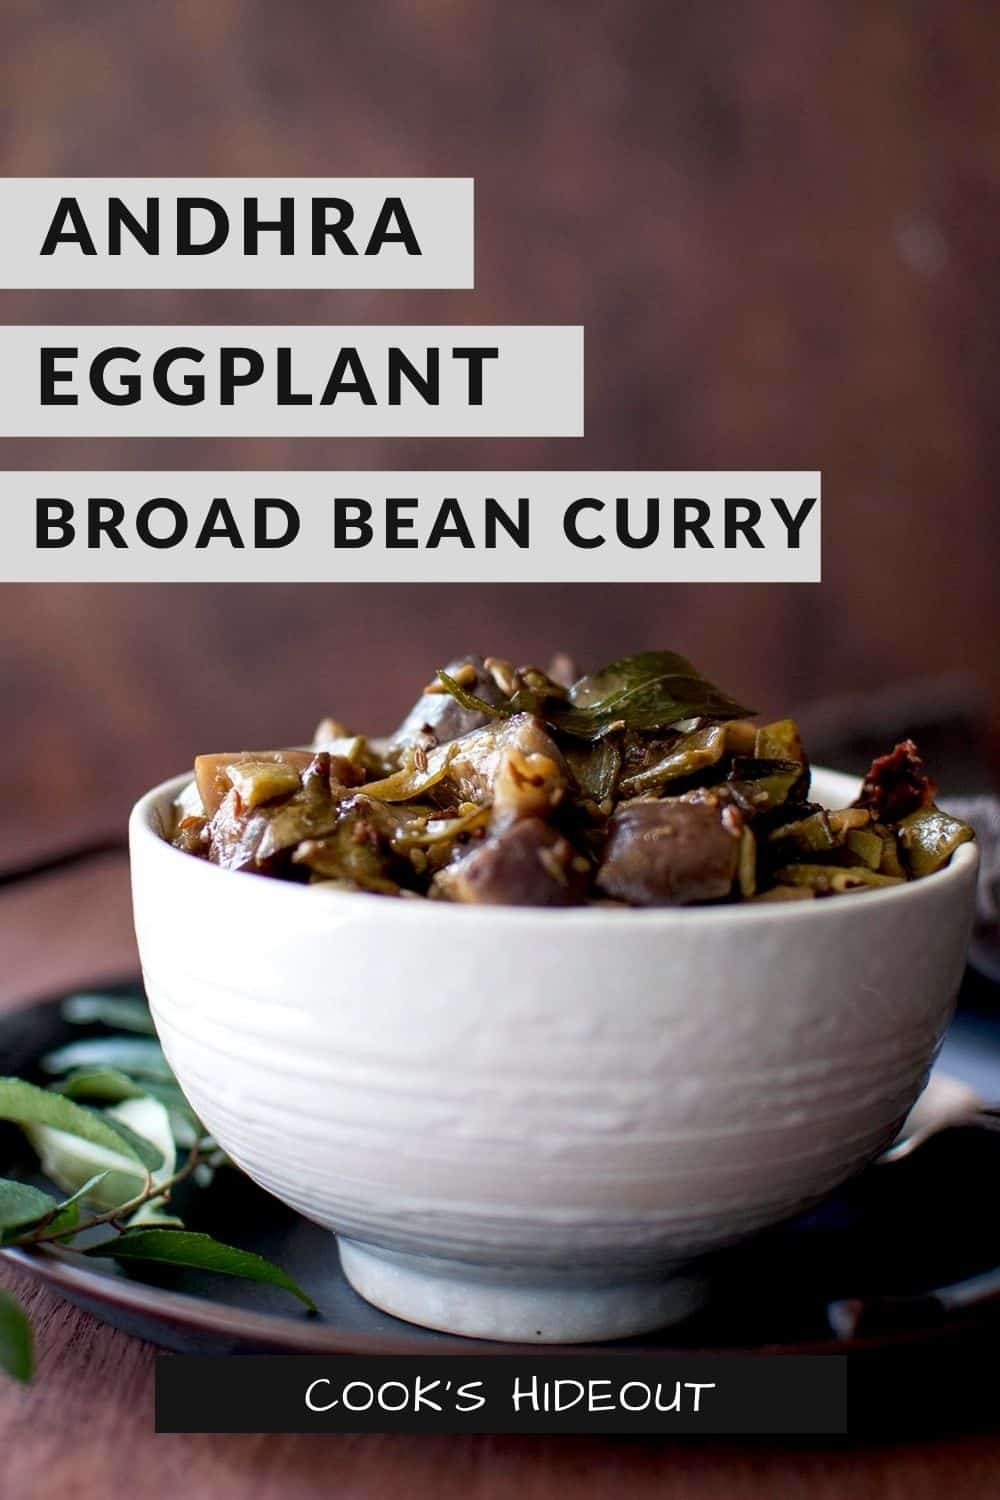 Eggplant broad beans curry in a white bowl